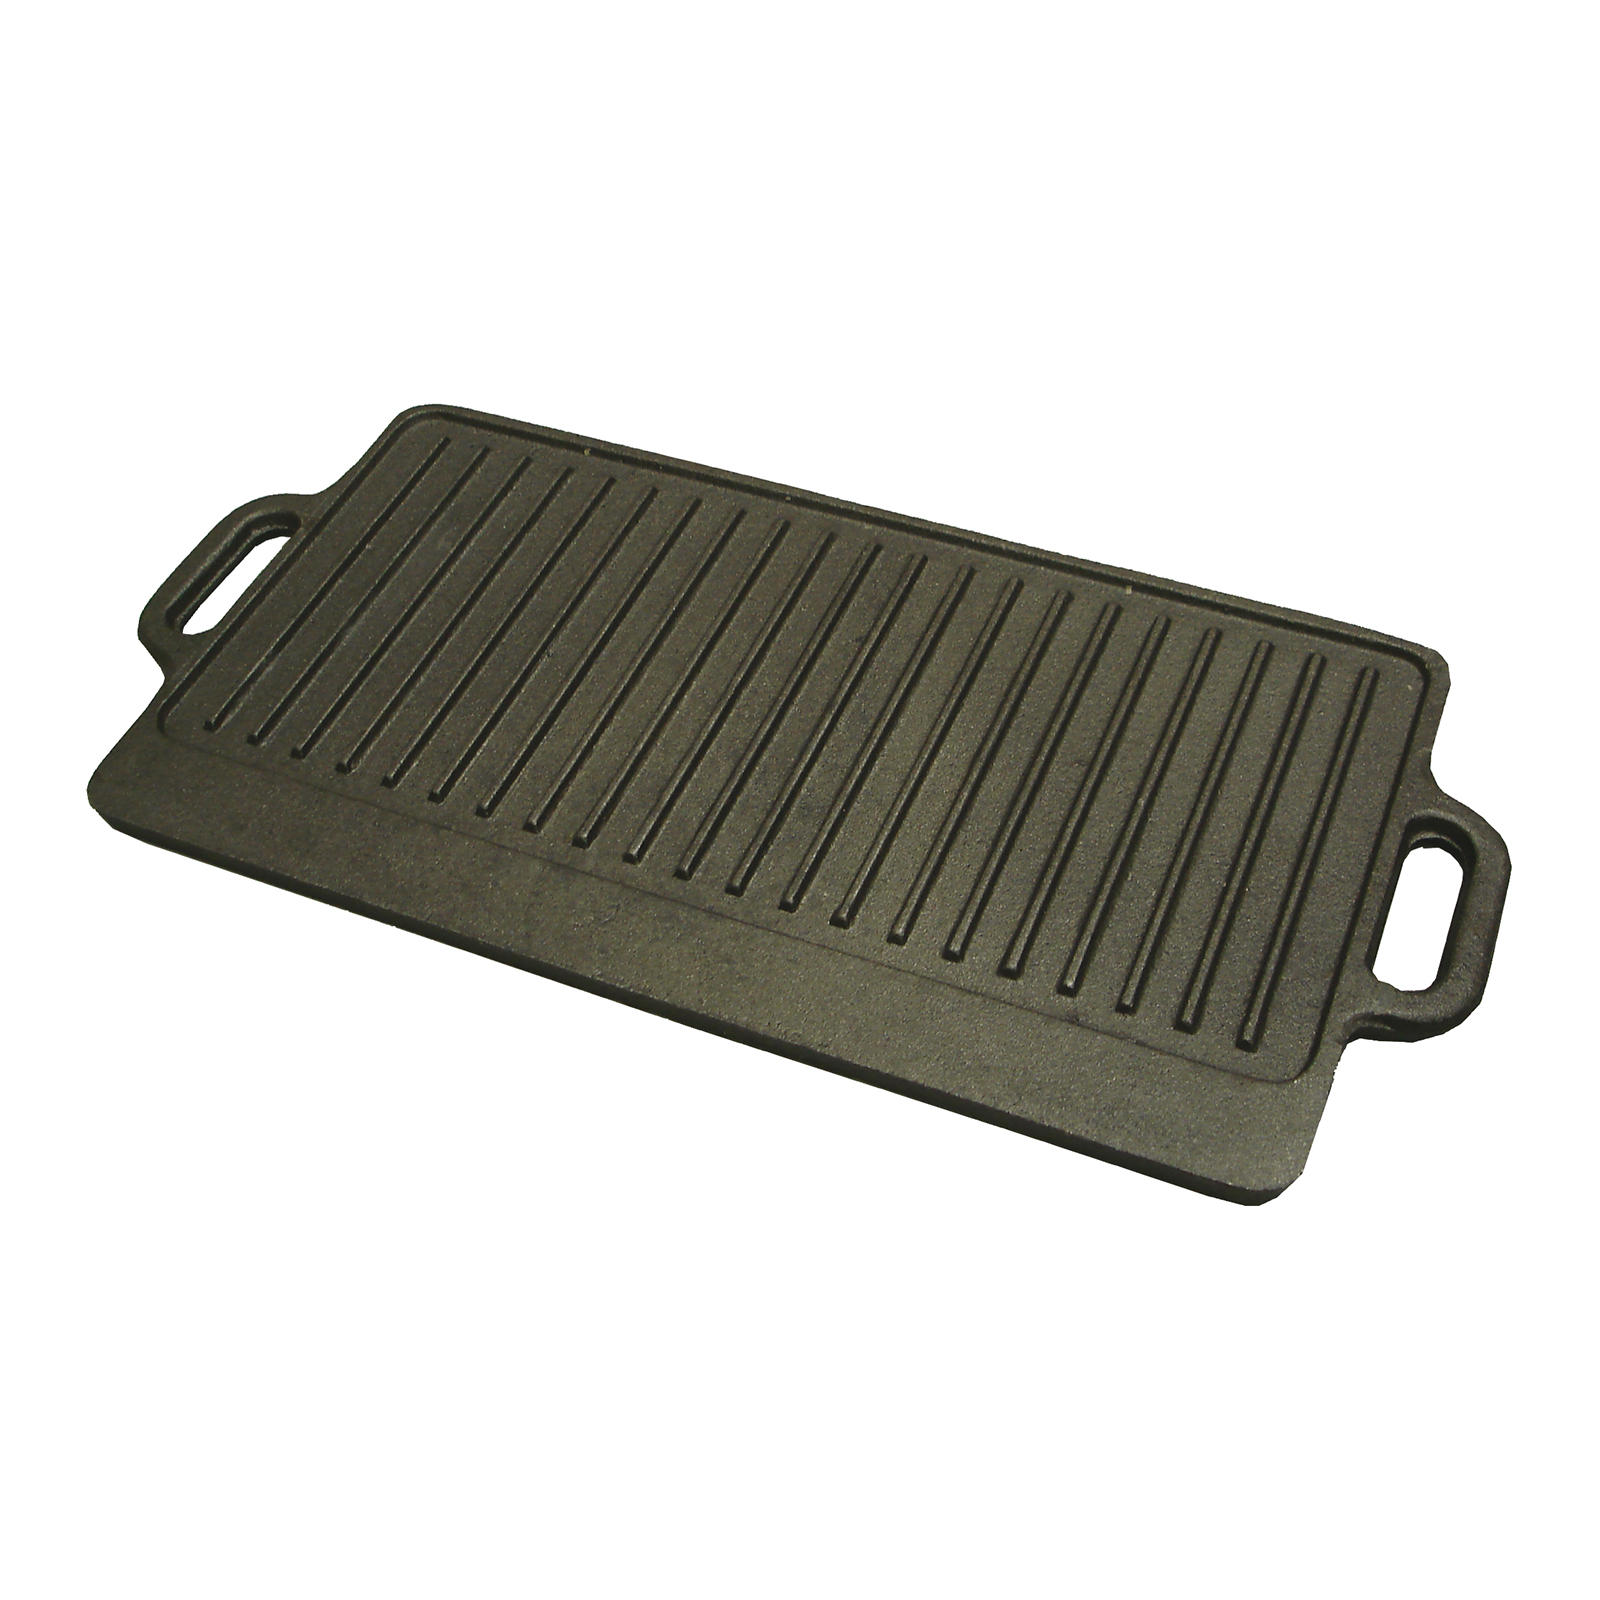 Winco IGD-2095 cast iron grill / griddle plate